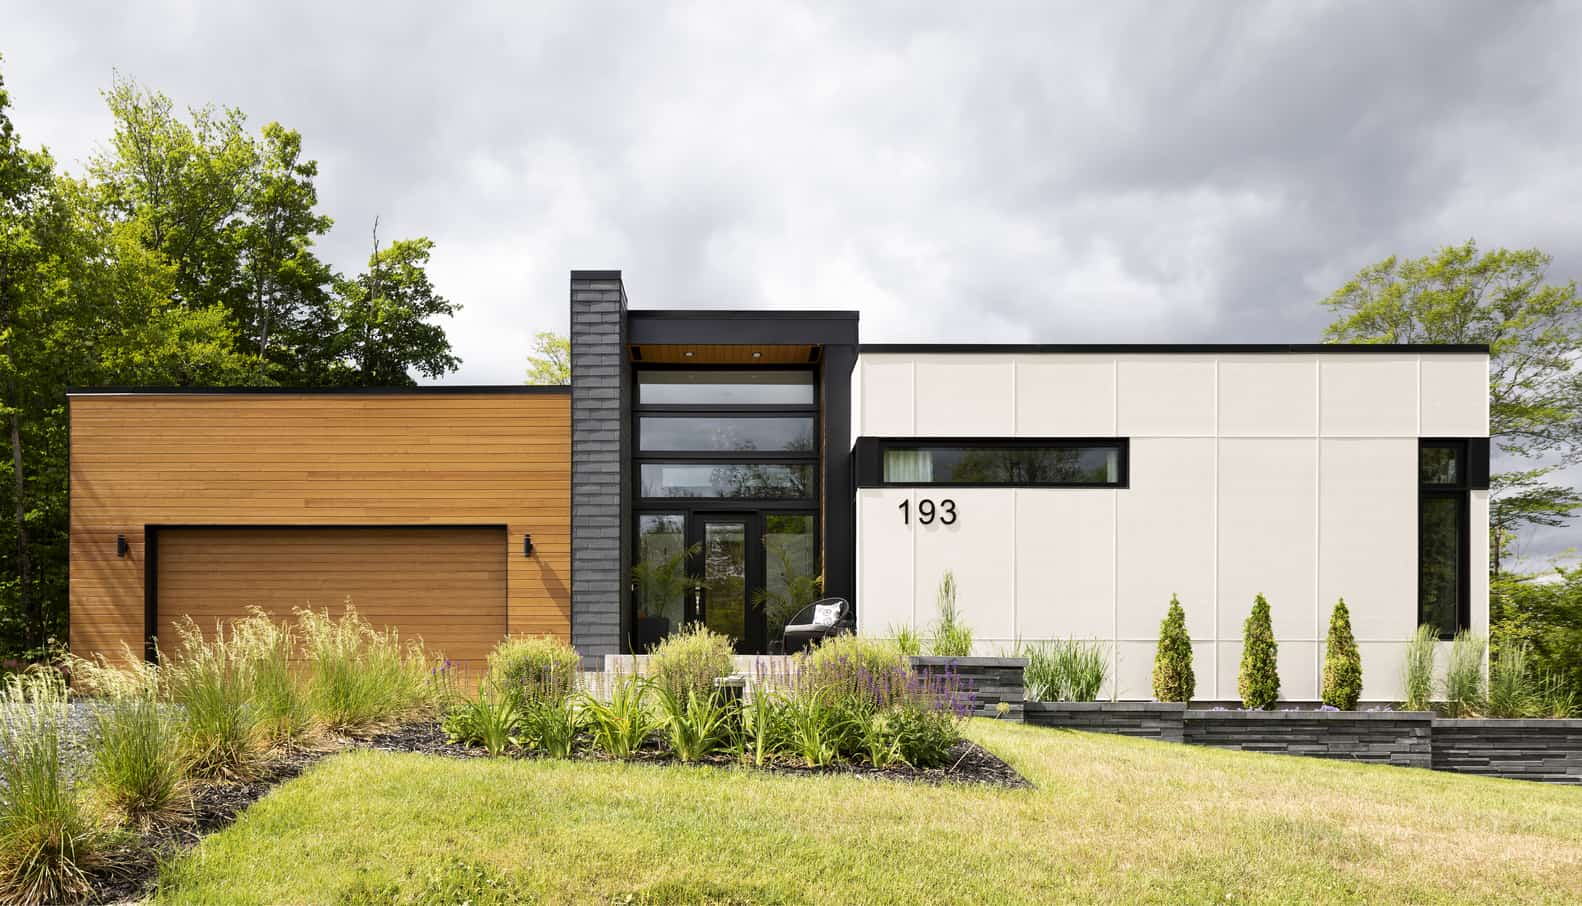 Résidence in Stoneham, created by PARKA by Architecture & Design, exemplifies modern cubic beauty in Canadian nature